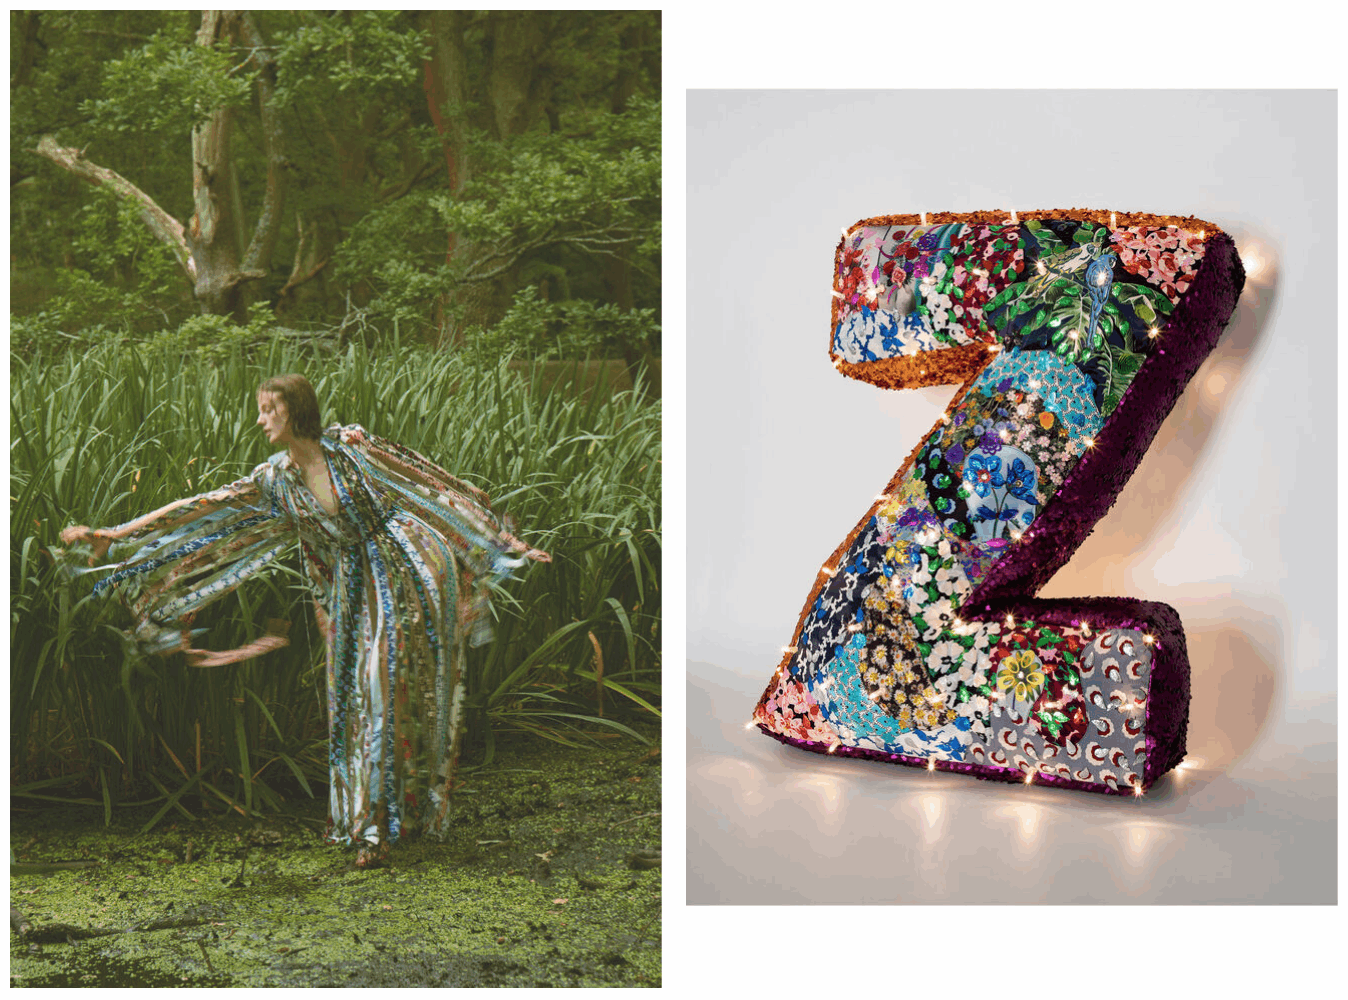 Stella McCartney's A-Z Manifesto: An intersection of fashion, art and sustainability